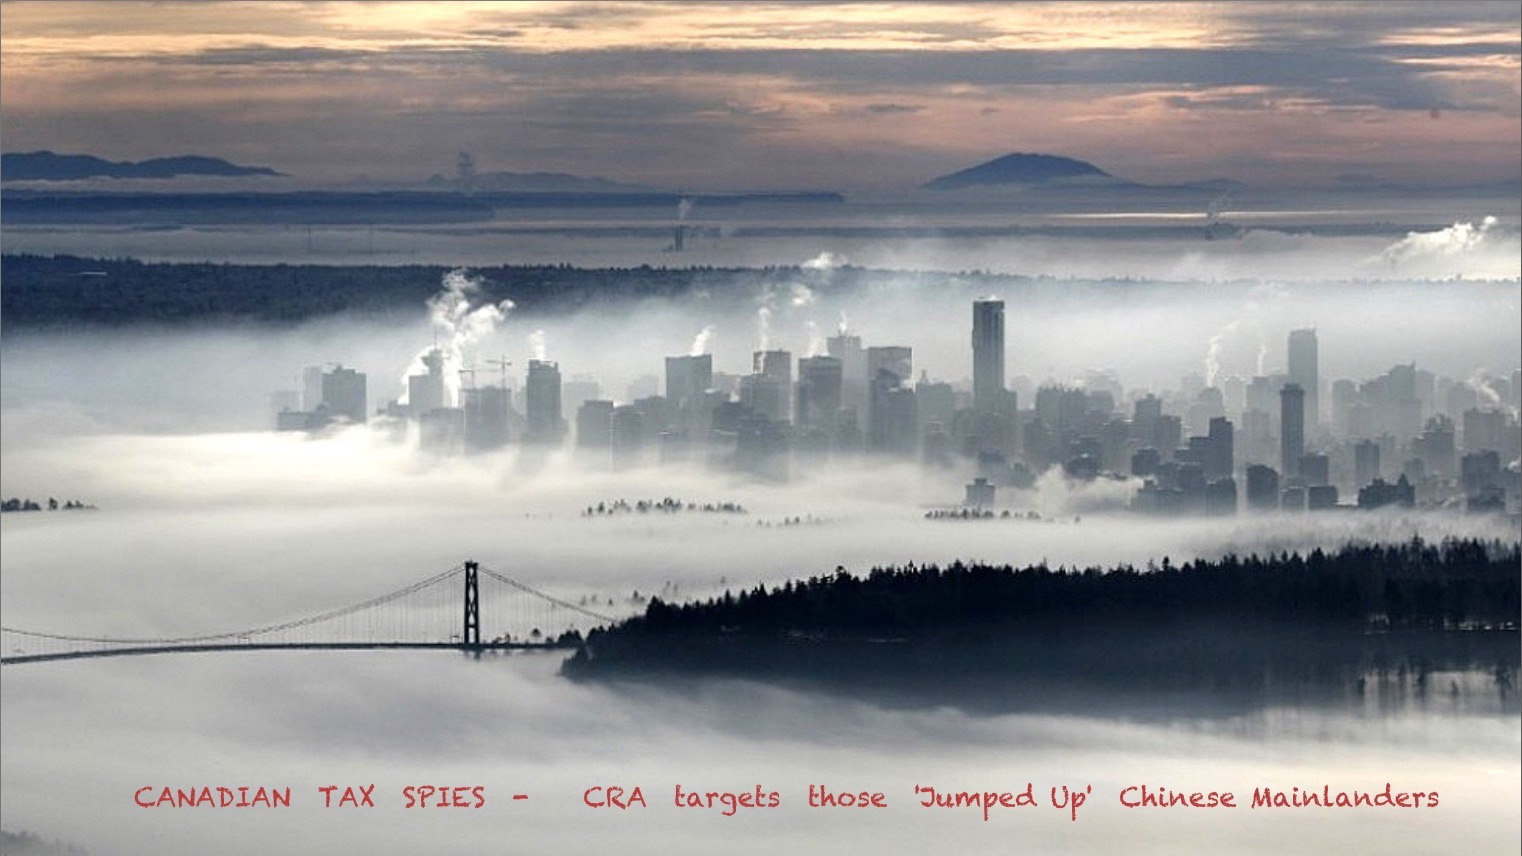 BURNABY METROTOWN - News and Views: Canadian Domestic Spying On the